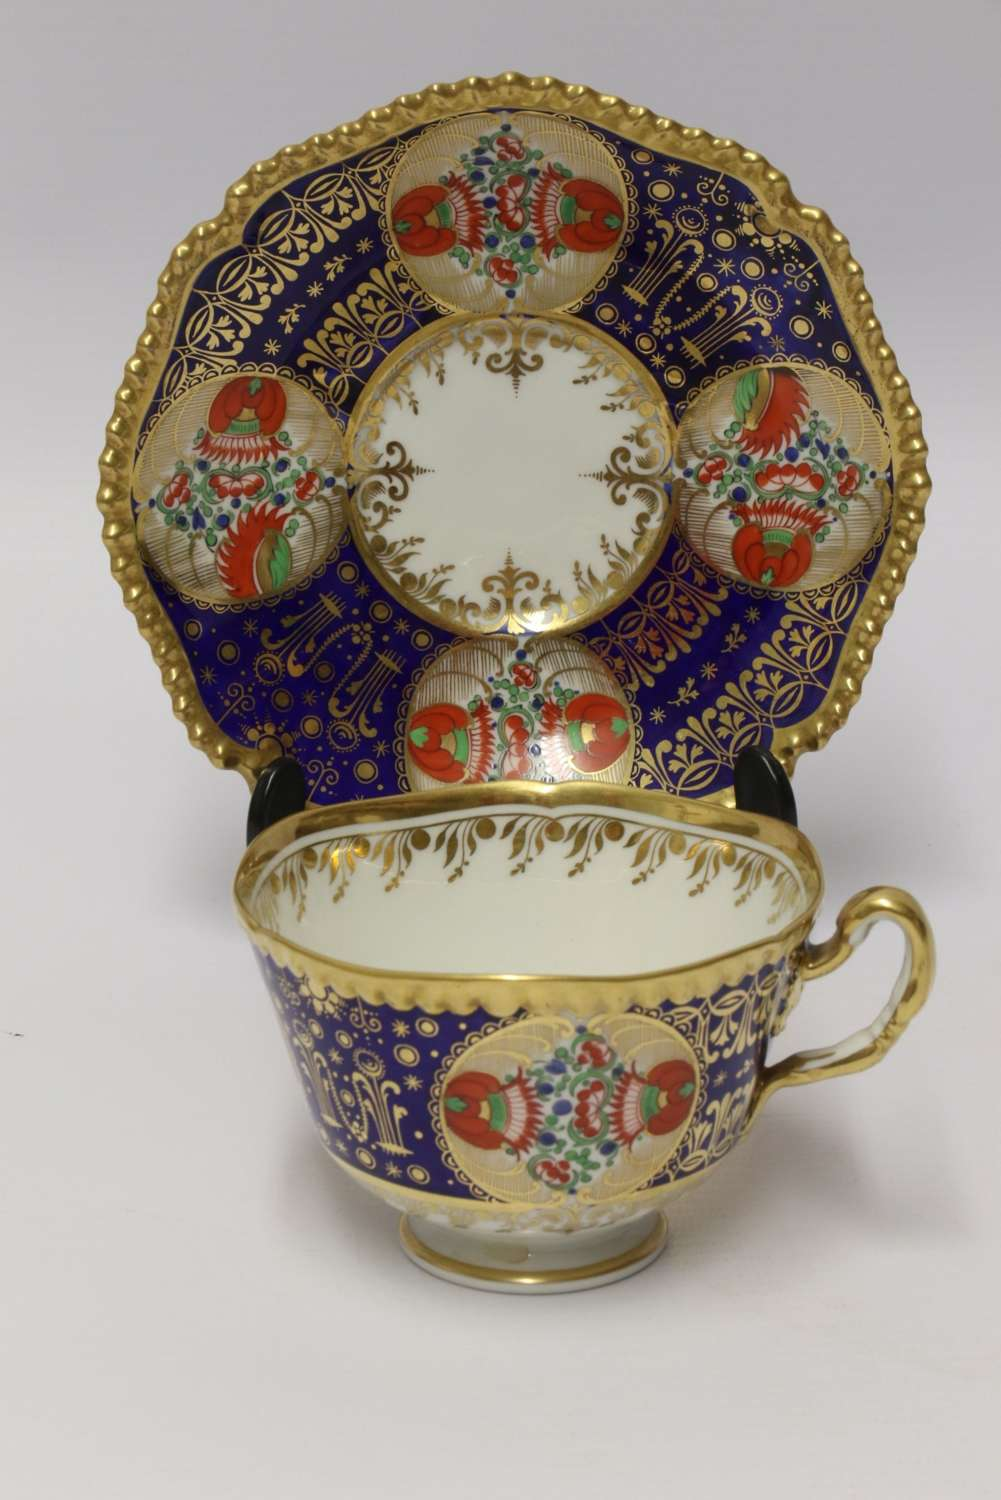 An Early 19th C Chamberlain Worcester Cup And Saucer from The Sir James Yeo Service.